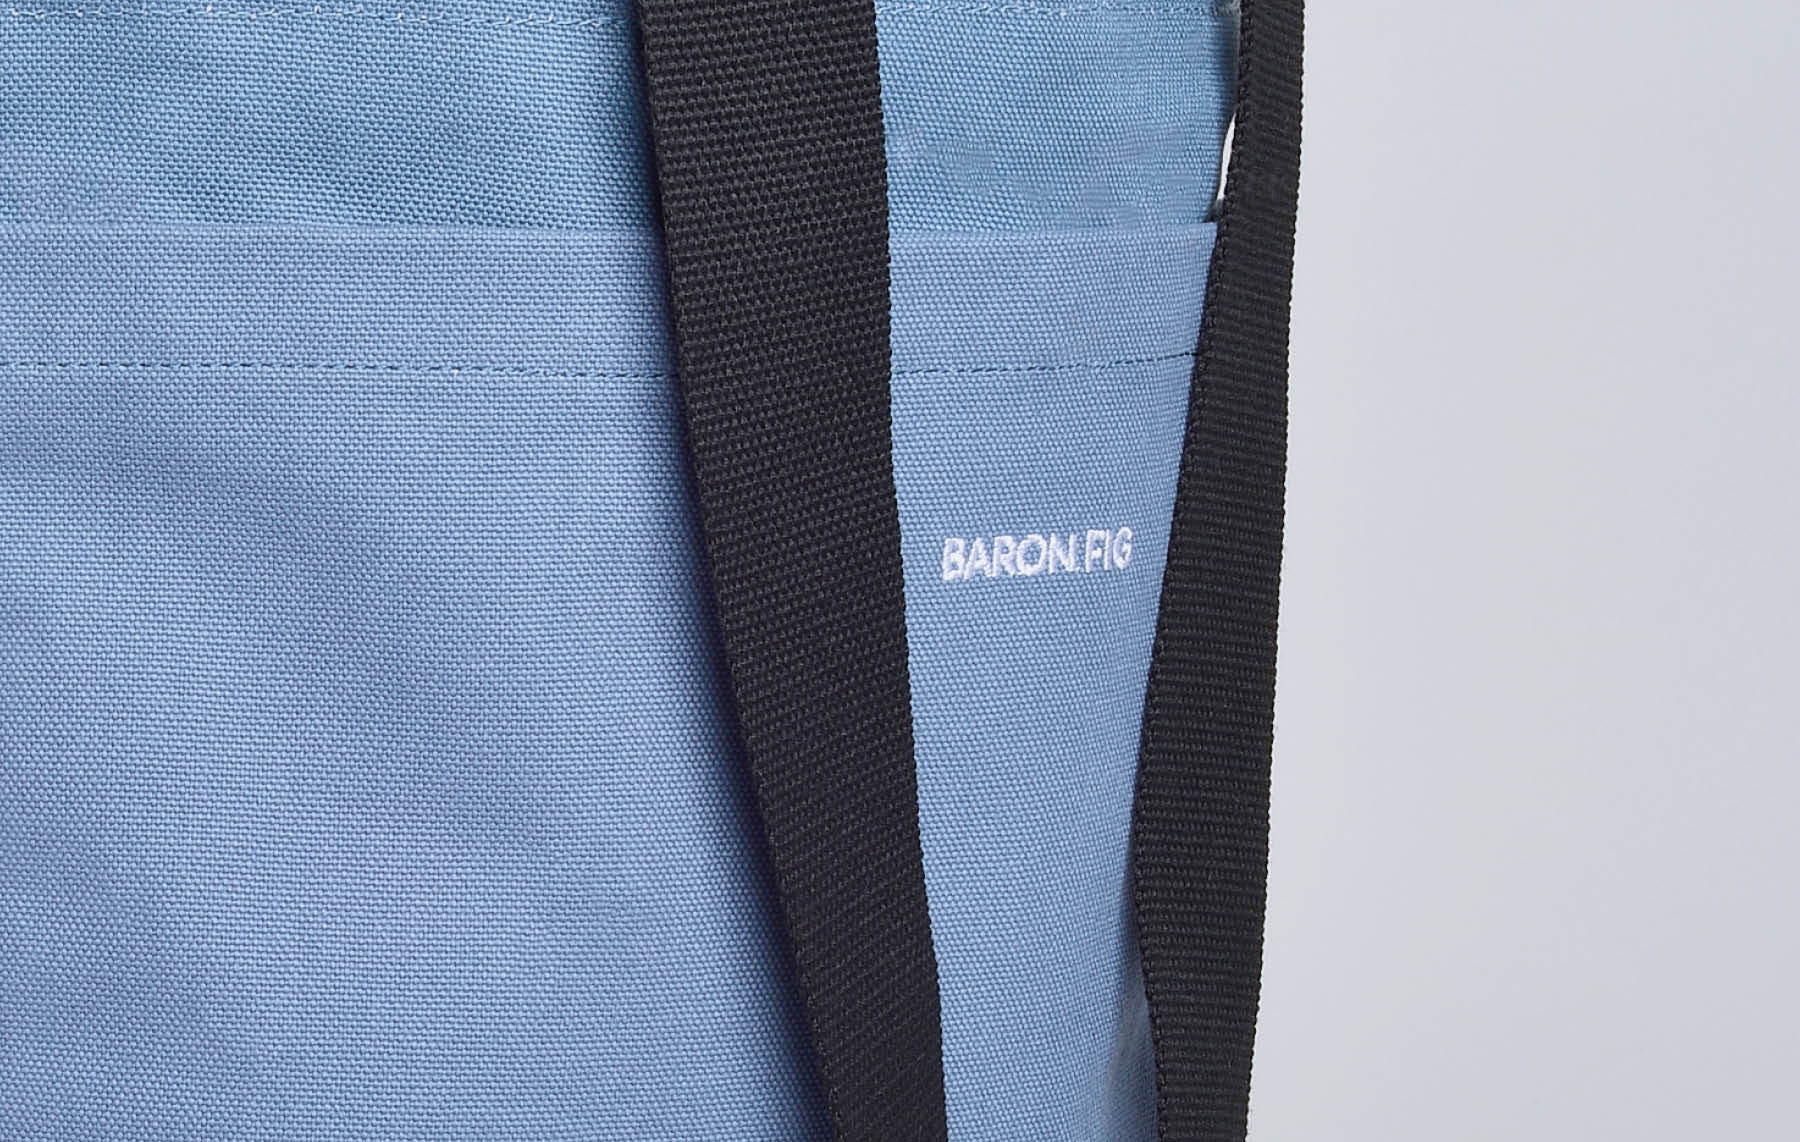 close up of black handles and baron fig logo on blue slate tote